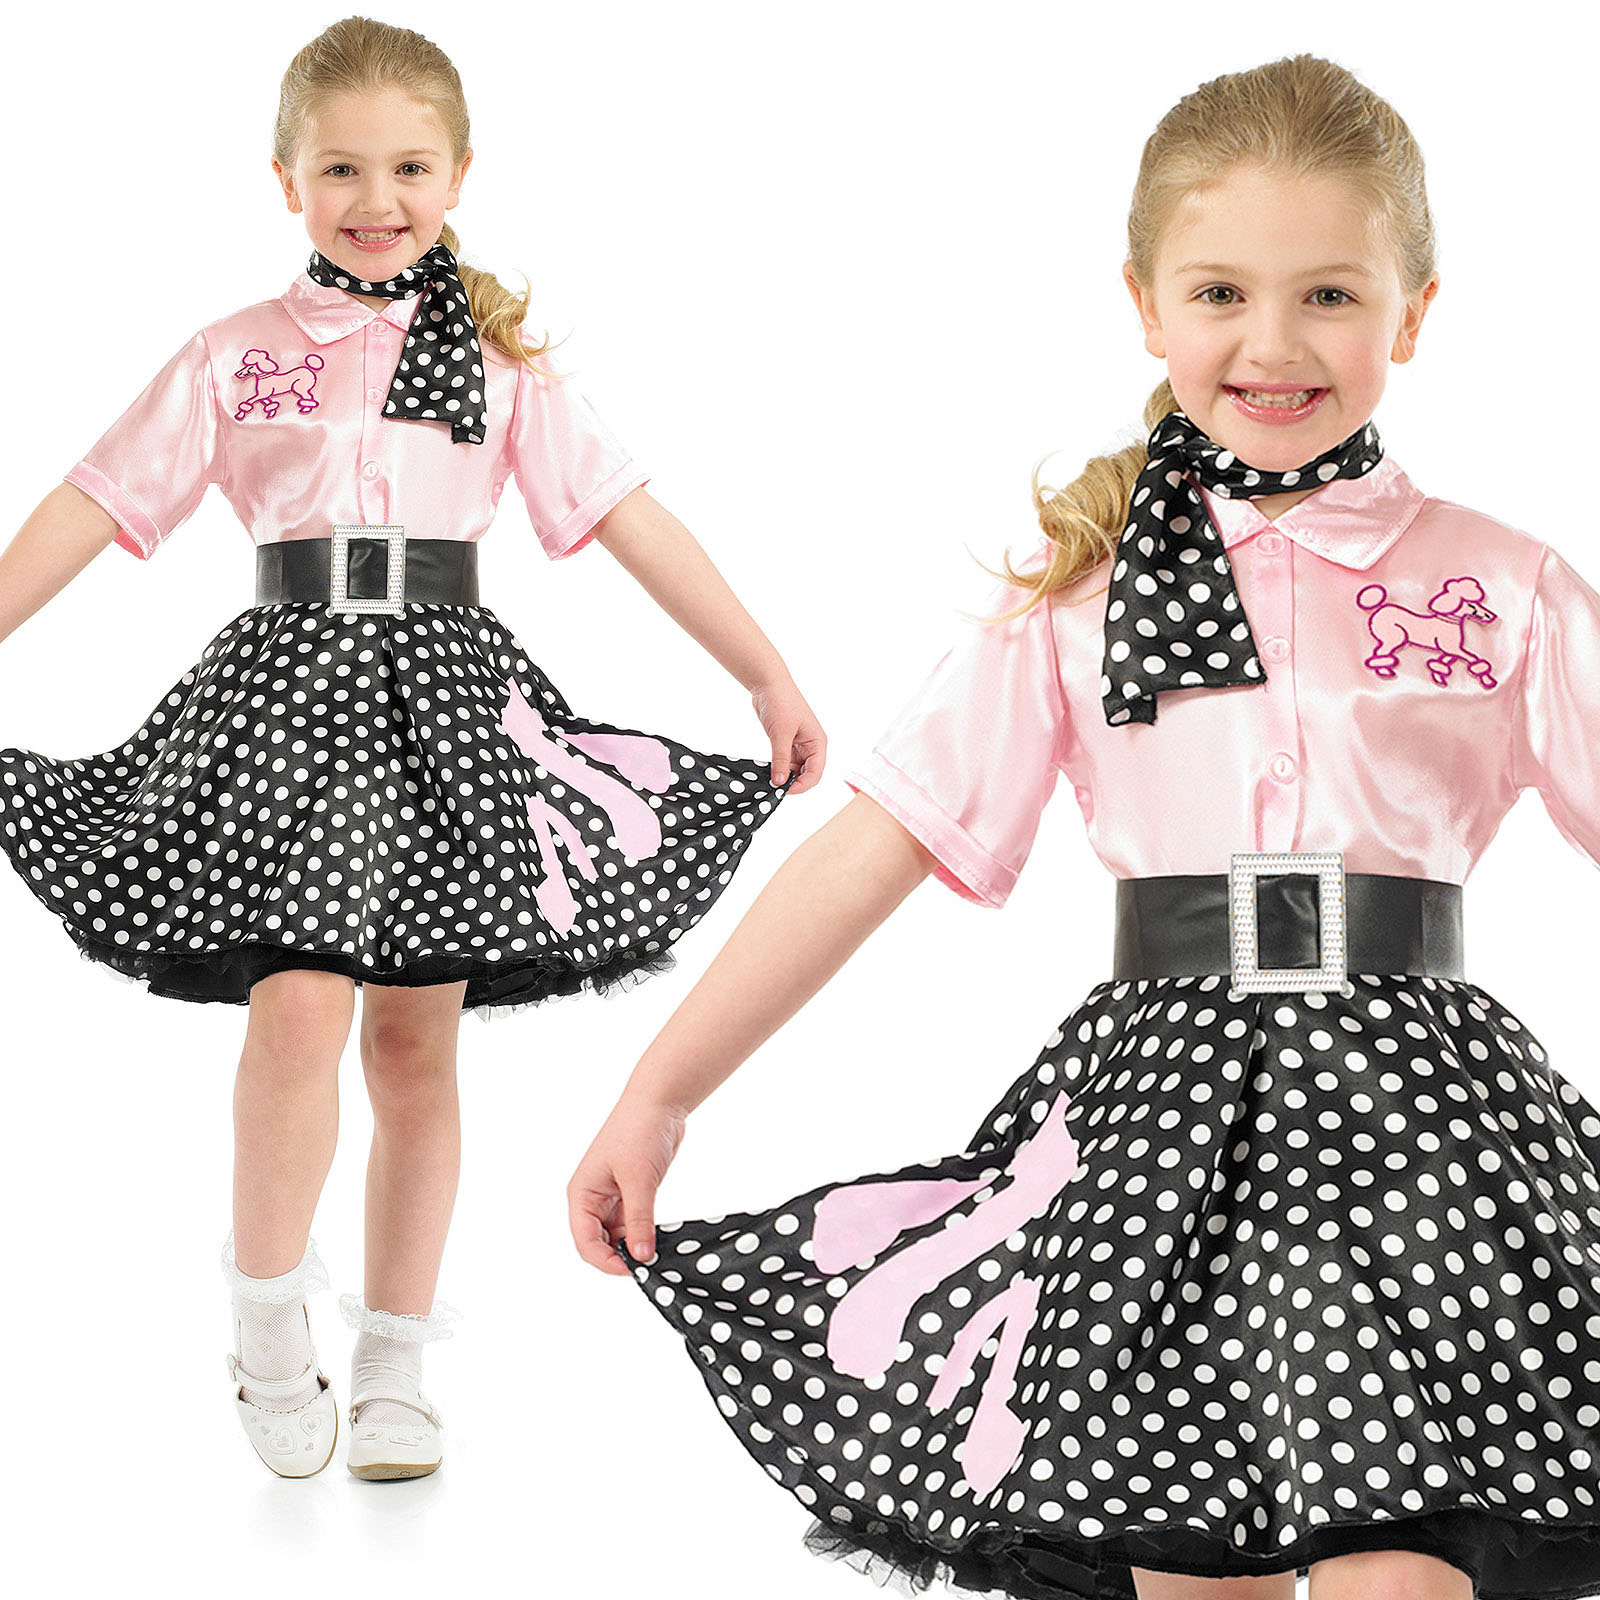 childrens pink polka dot rock n roll fancy dress costume 50s outfit 4 12 yrs ebay. Black Bedroom Furniture Sets. Home Design Ideas